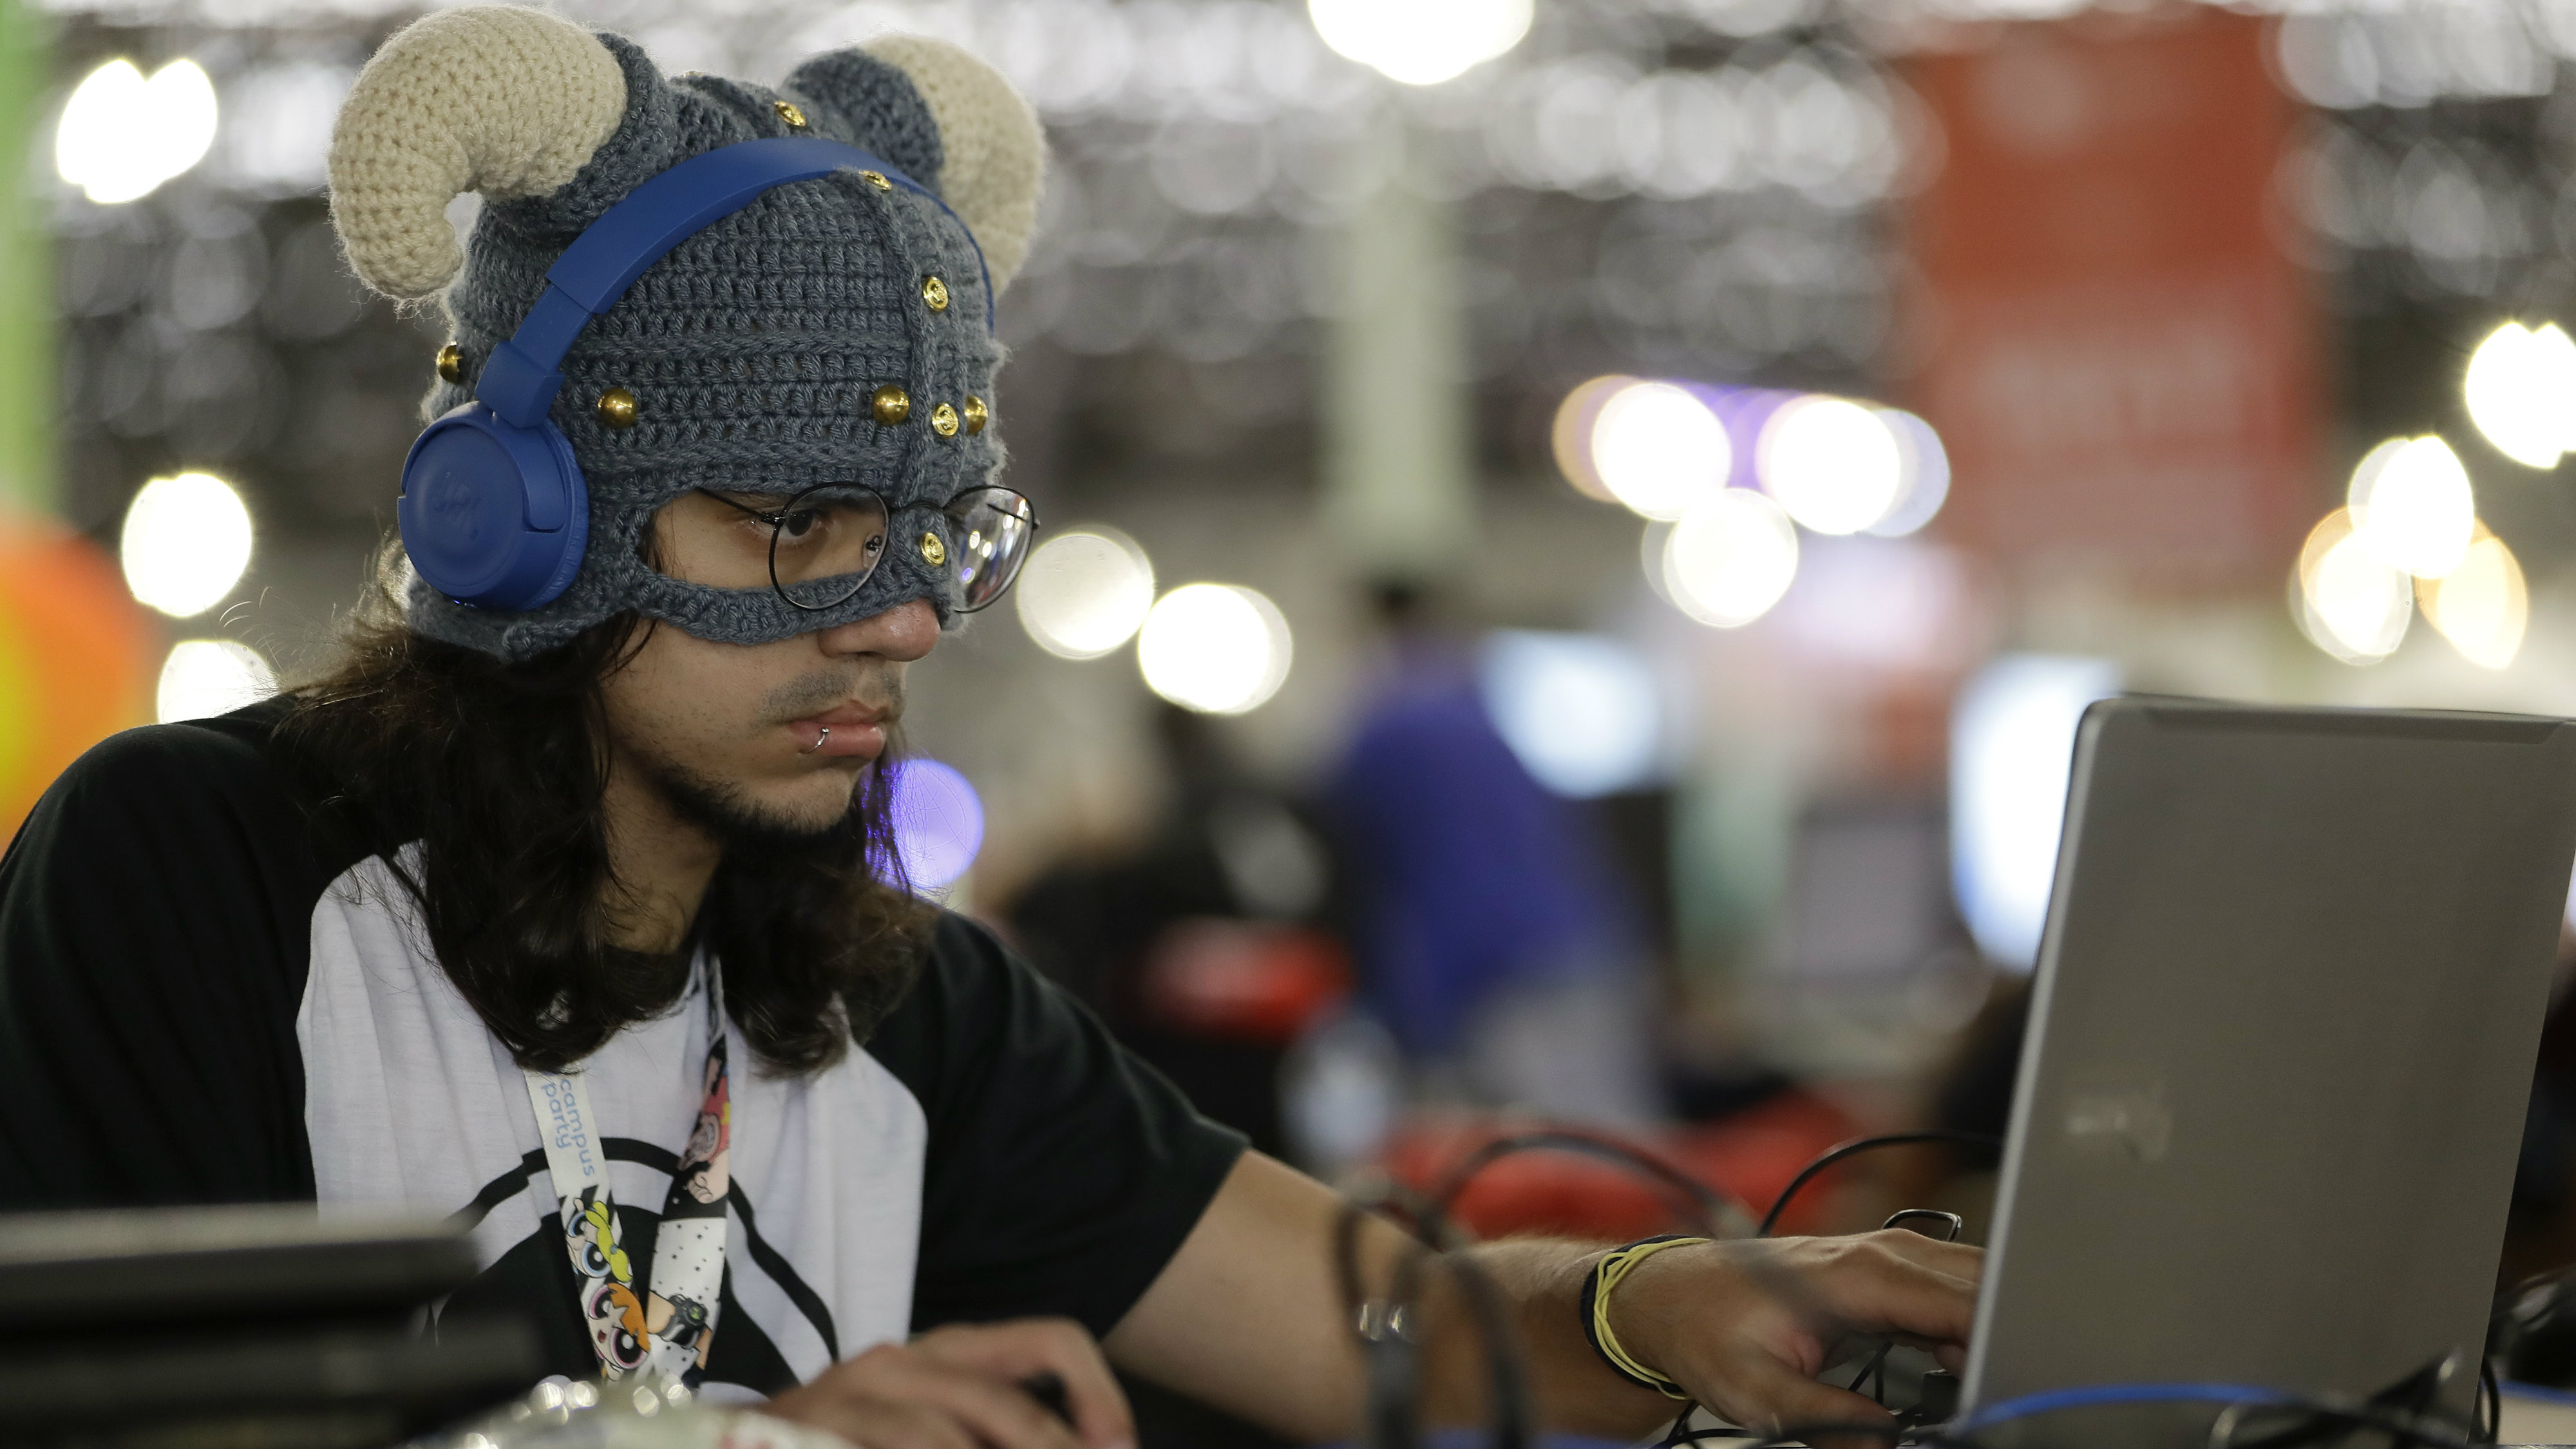 """A participant plays games at the """"Campus Party,"""" a technology festival, in Sao Paulo, Brazil, Wednesday, Jan. 31, 2018. Campus Party is an annual week-long, 24-hour technology festival that gathers hackers, developers, gamers and computer enthusiasts."""